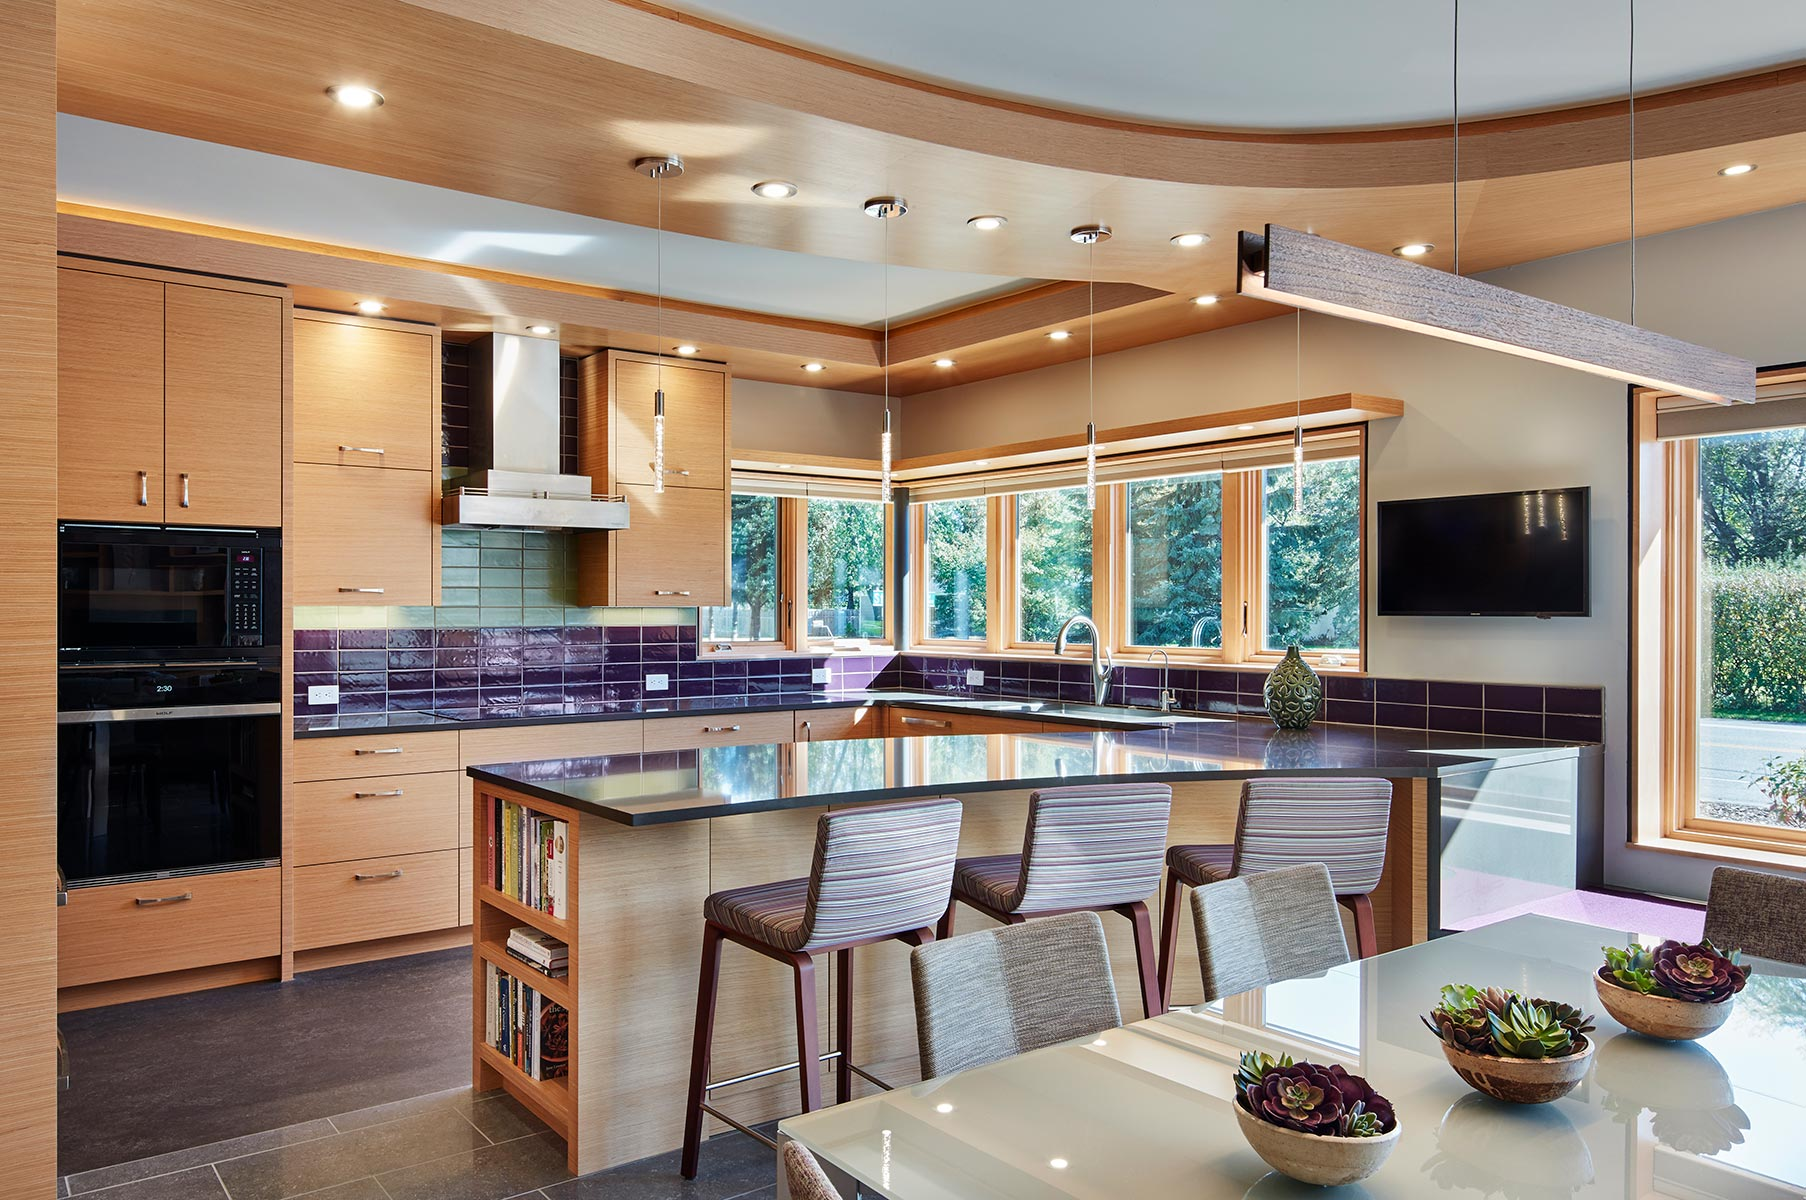 3-kitchen-energy-efficient-lighting-minneapolis-interior-designer.jpg